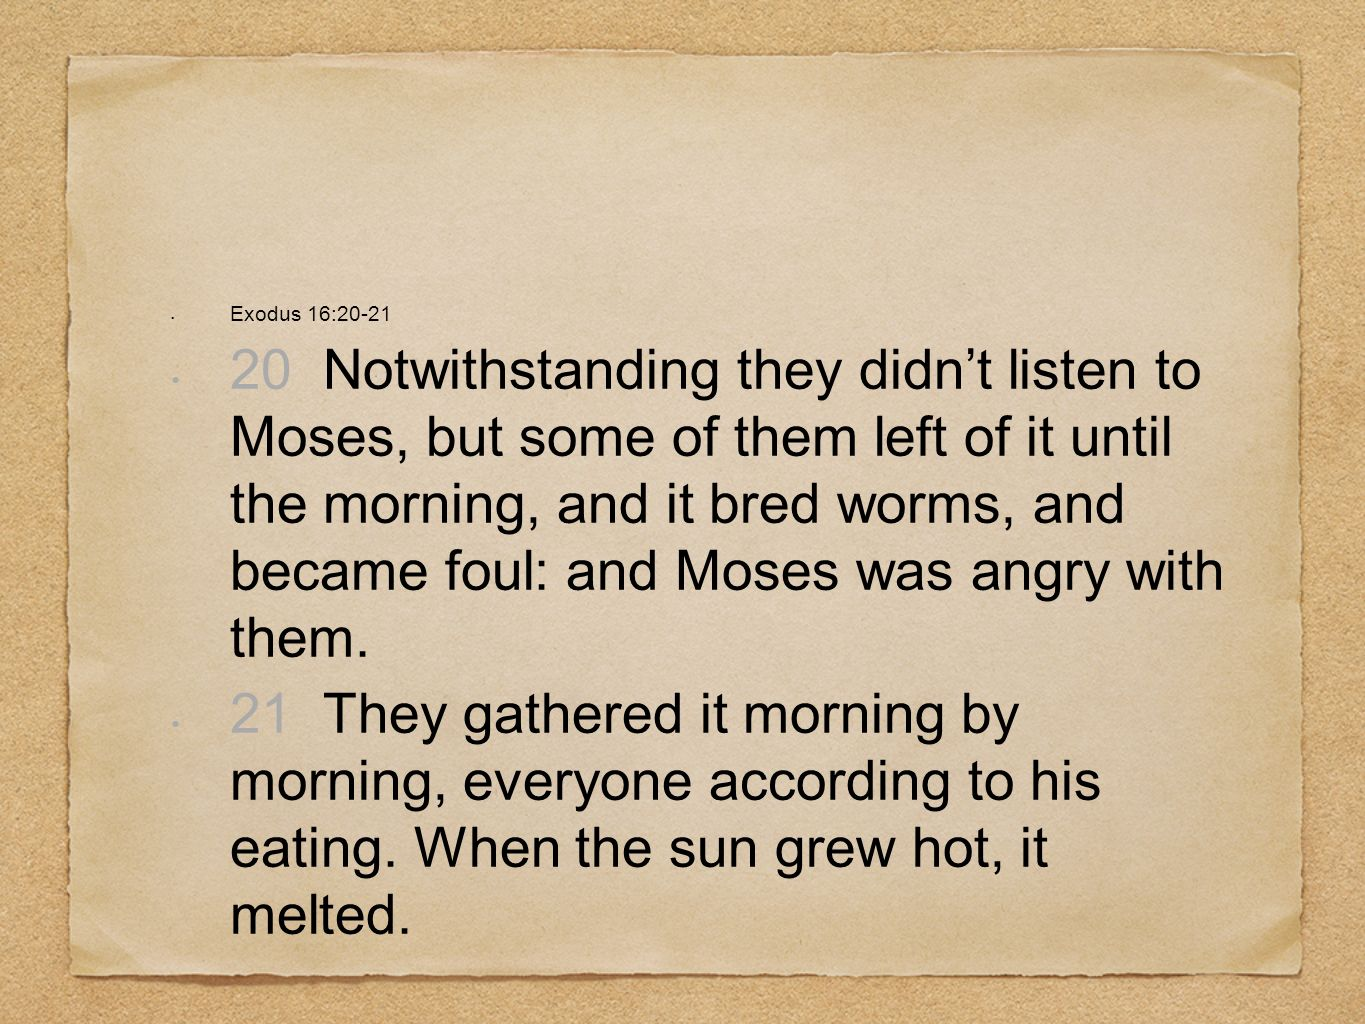 Exodus 16:20-21 20 Notwithstanding they didnt listen to Moses, but some of them left of it until the morning, and it bred worms, and became foul: and Moses was angry with them.